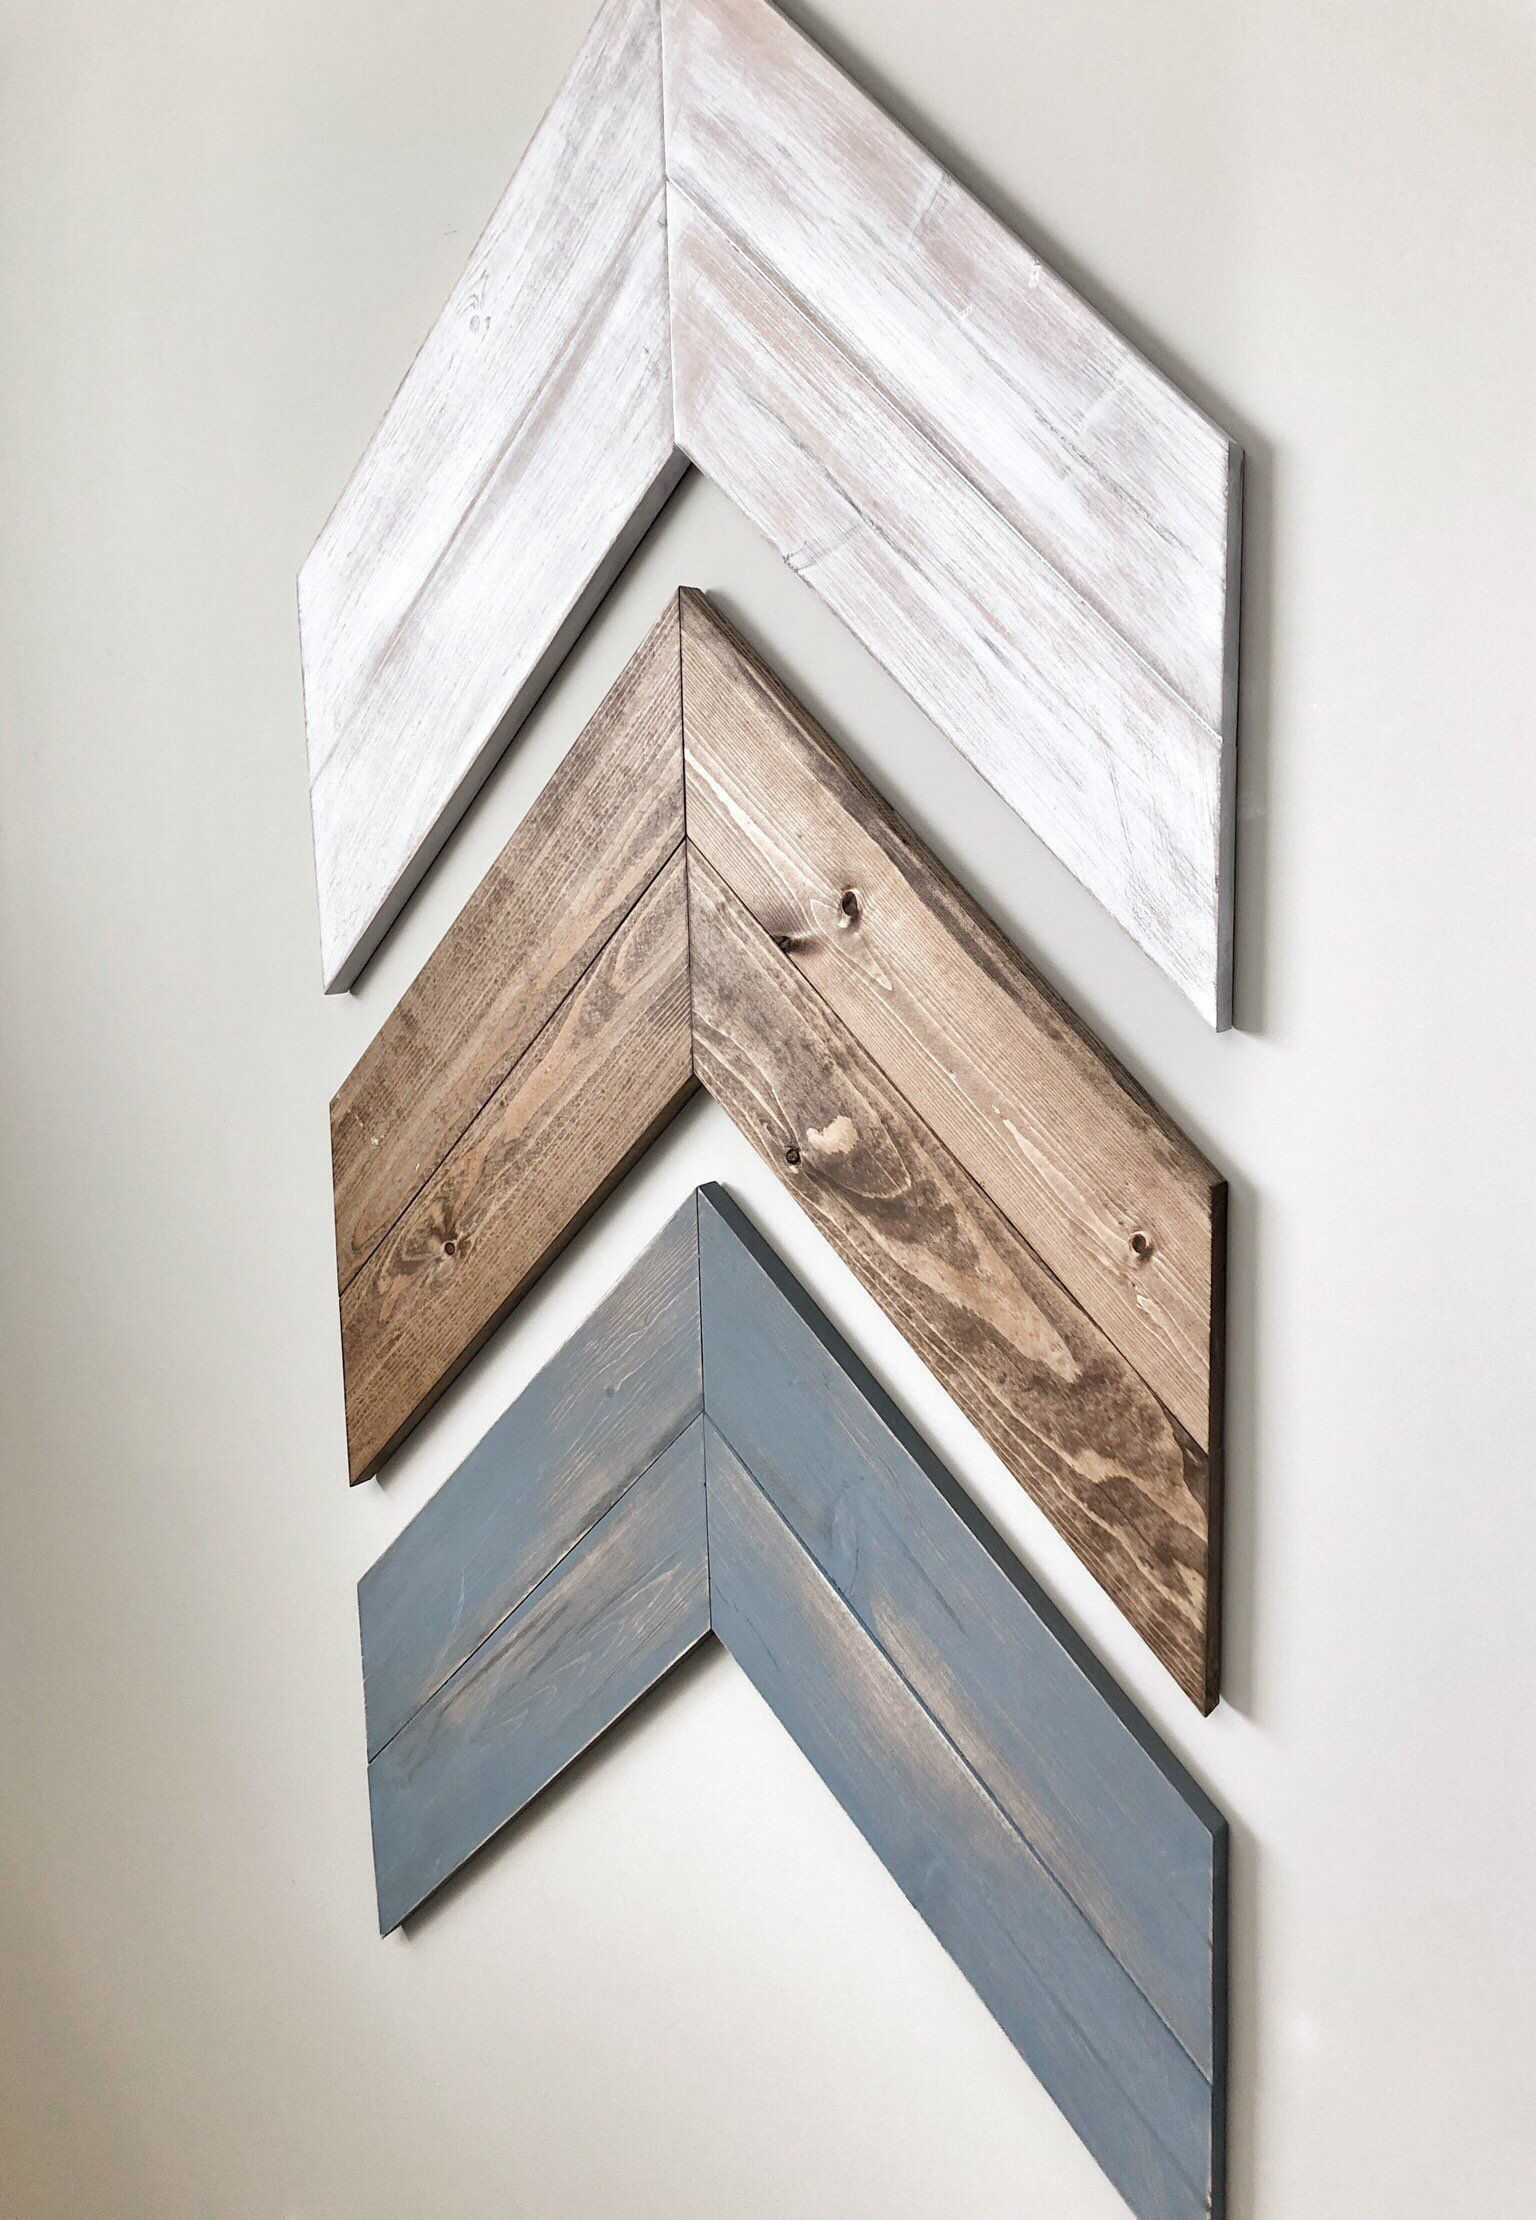 Set of 3 Large Reclaimed Wood Chevron Arrows, Huge Chevron Arrows, Rustic Wood Wall Decor, Rustic Nursery Wall Decor Arrows, FREE SHIPPING